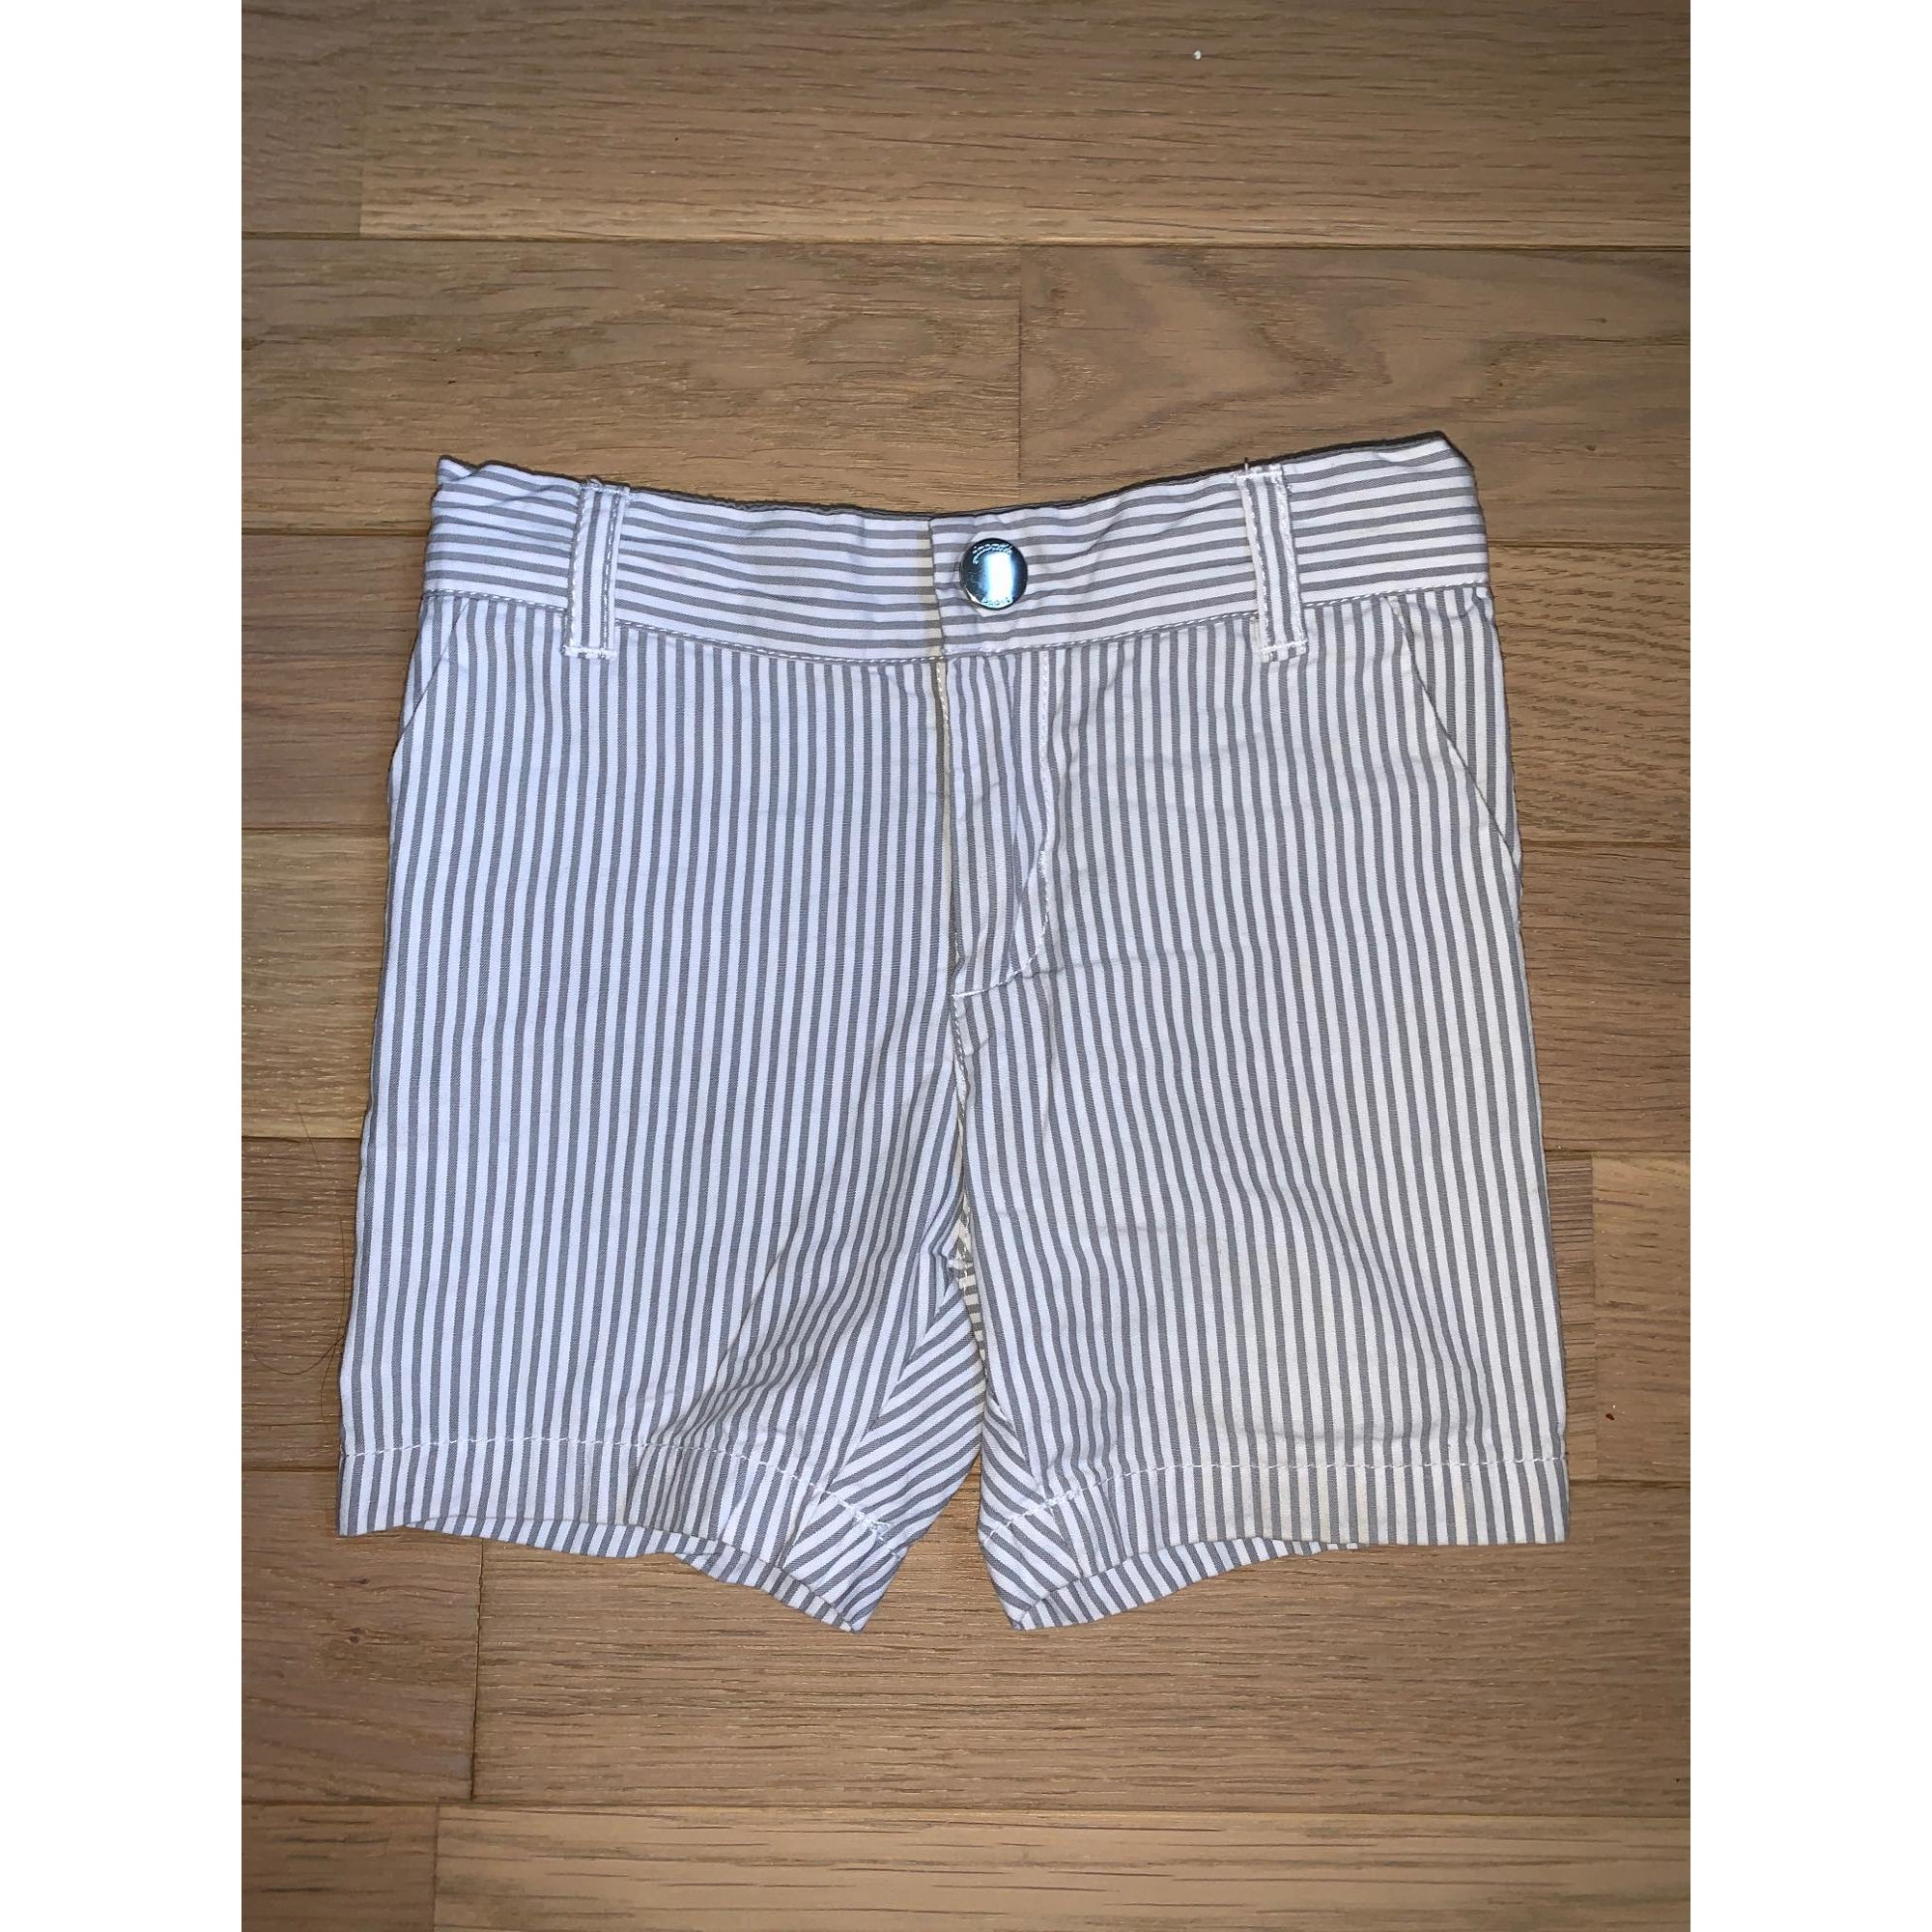 Short JACADI Gris, anthracite